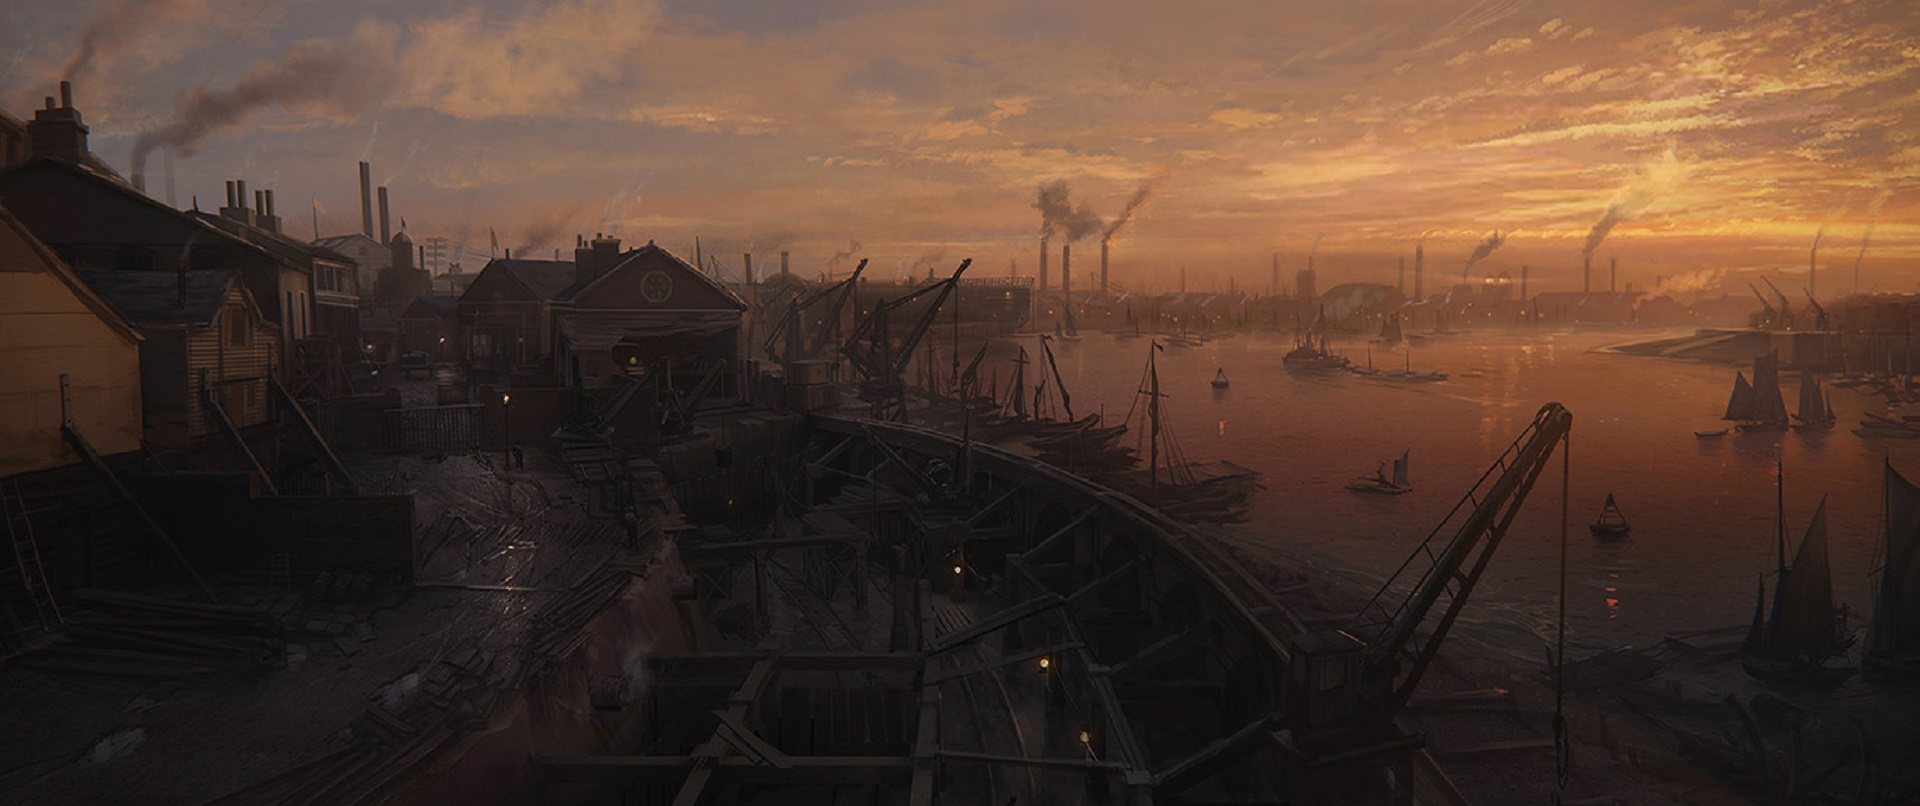 The Order 1886 Wallpaper Blackwall Yards Concept Artwork PS4